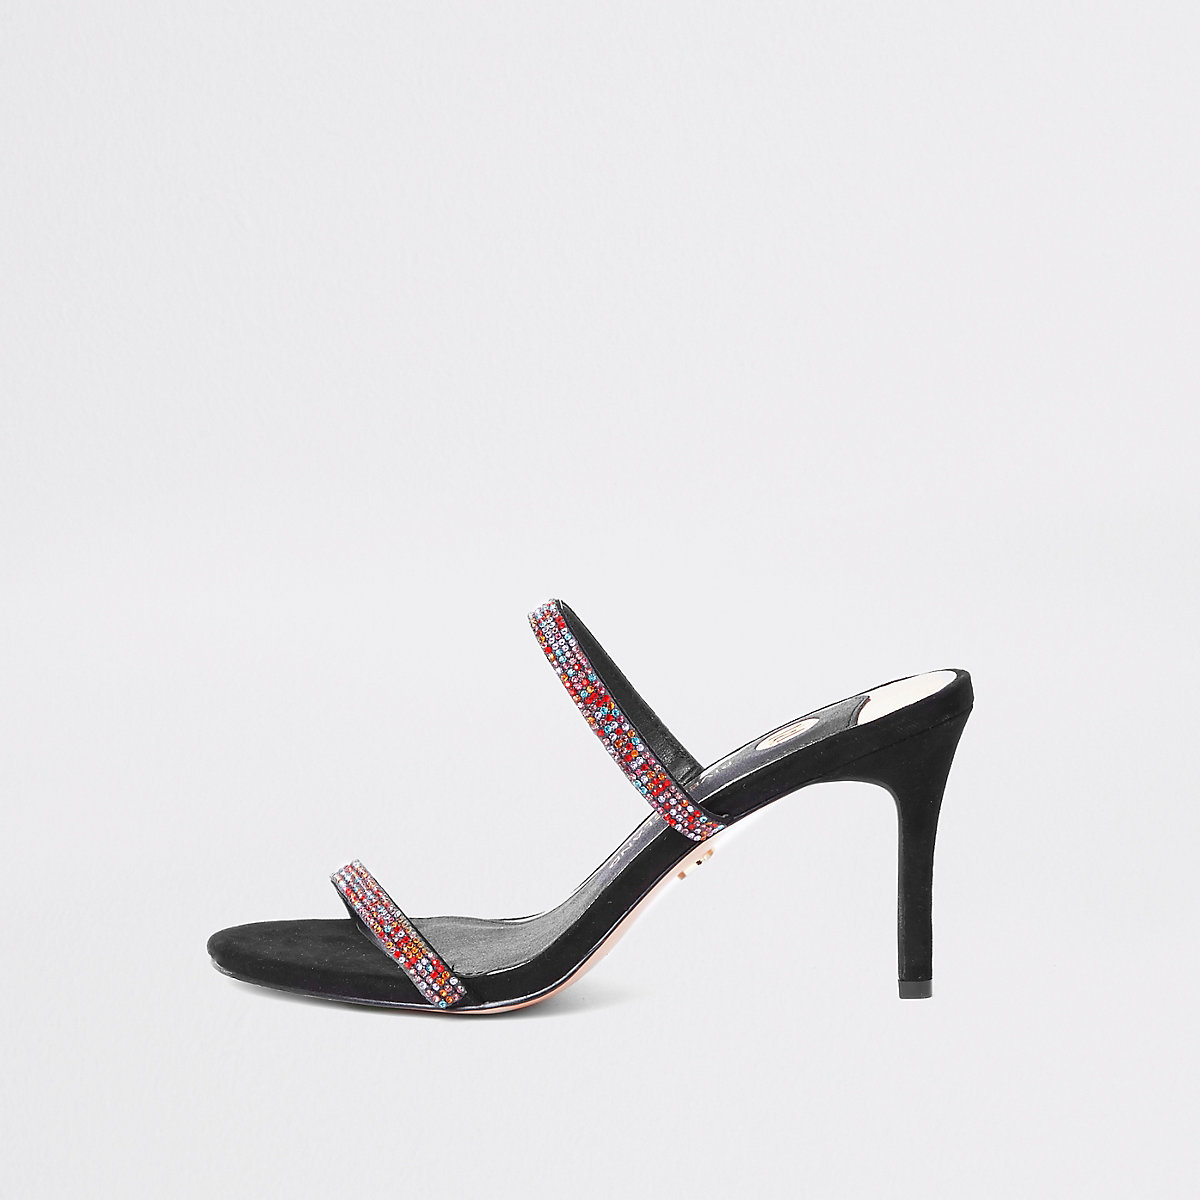 Black barely there slip on stiletto mules